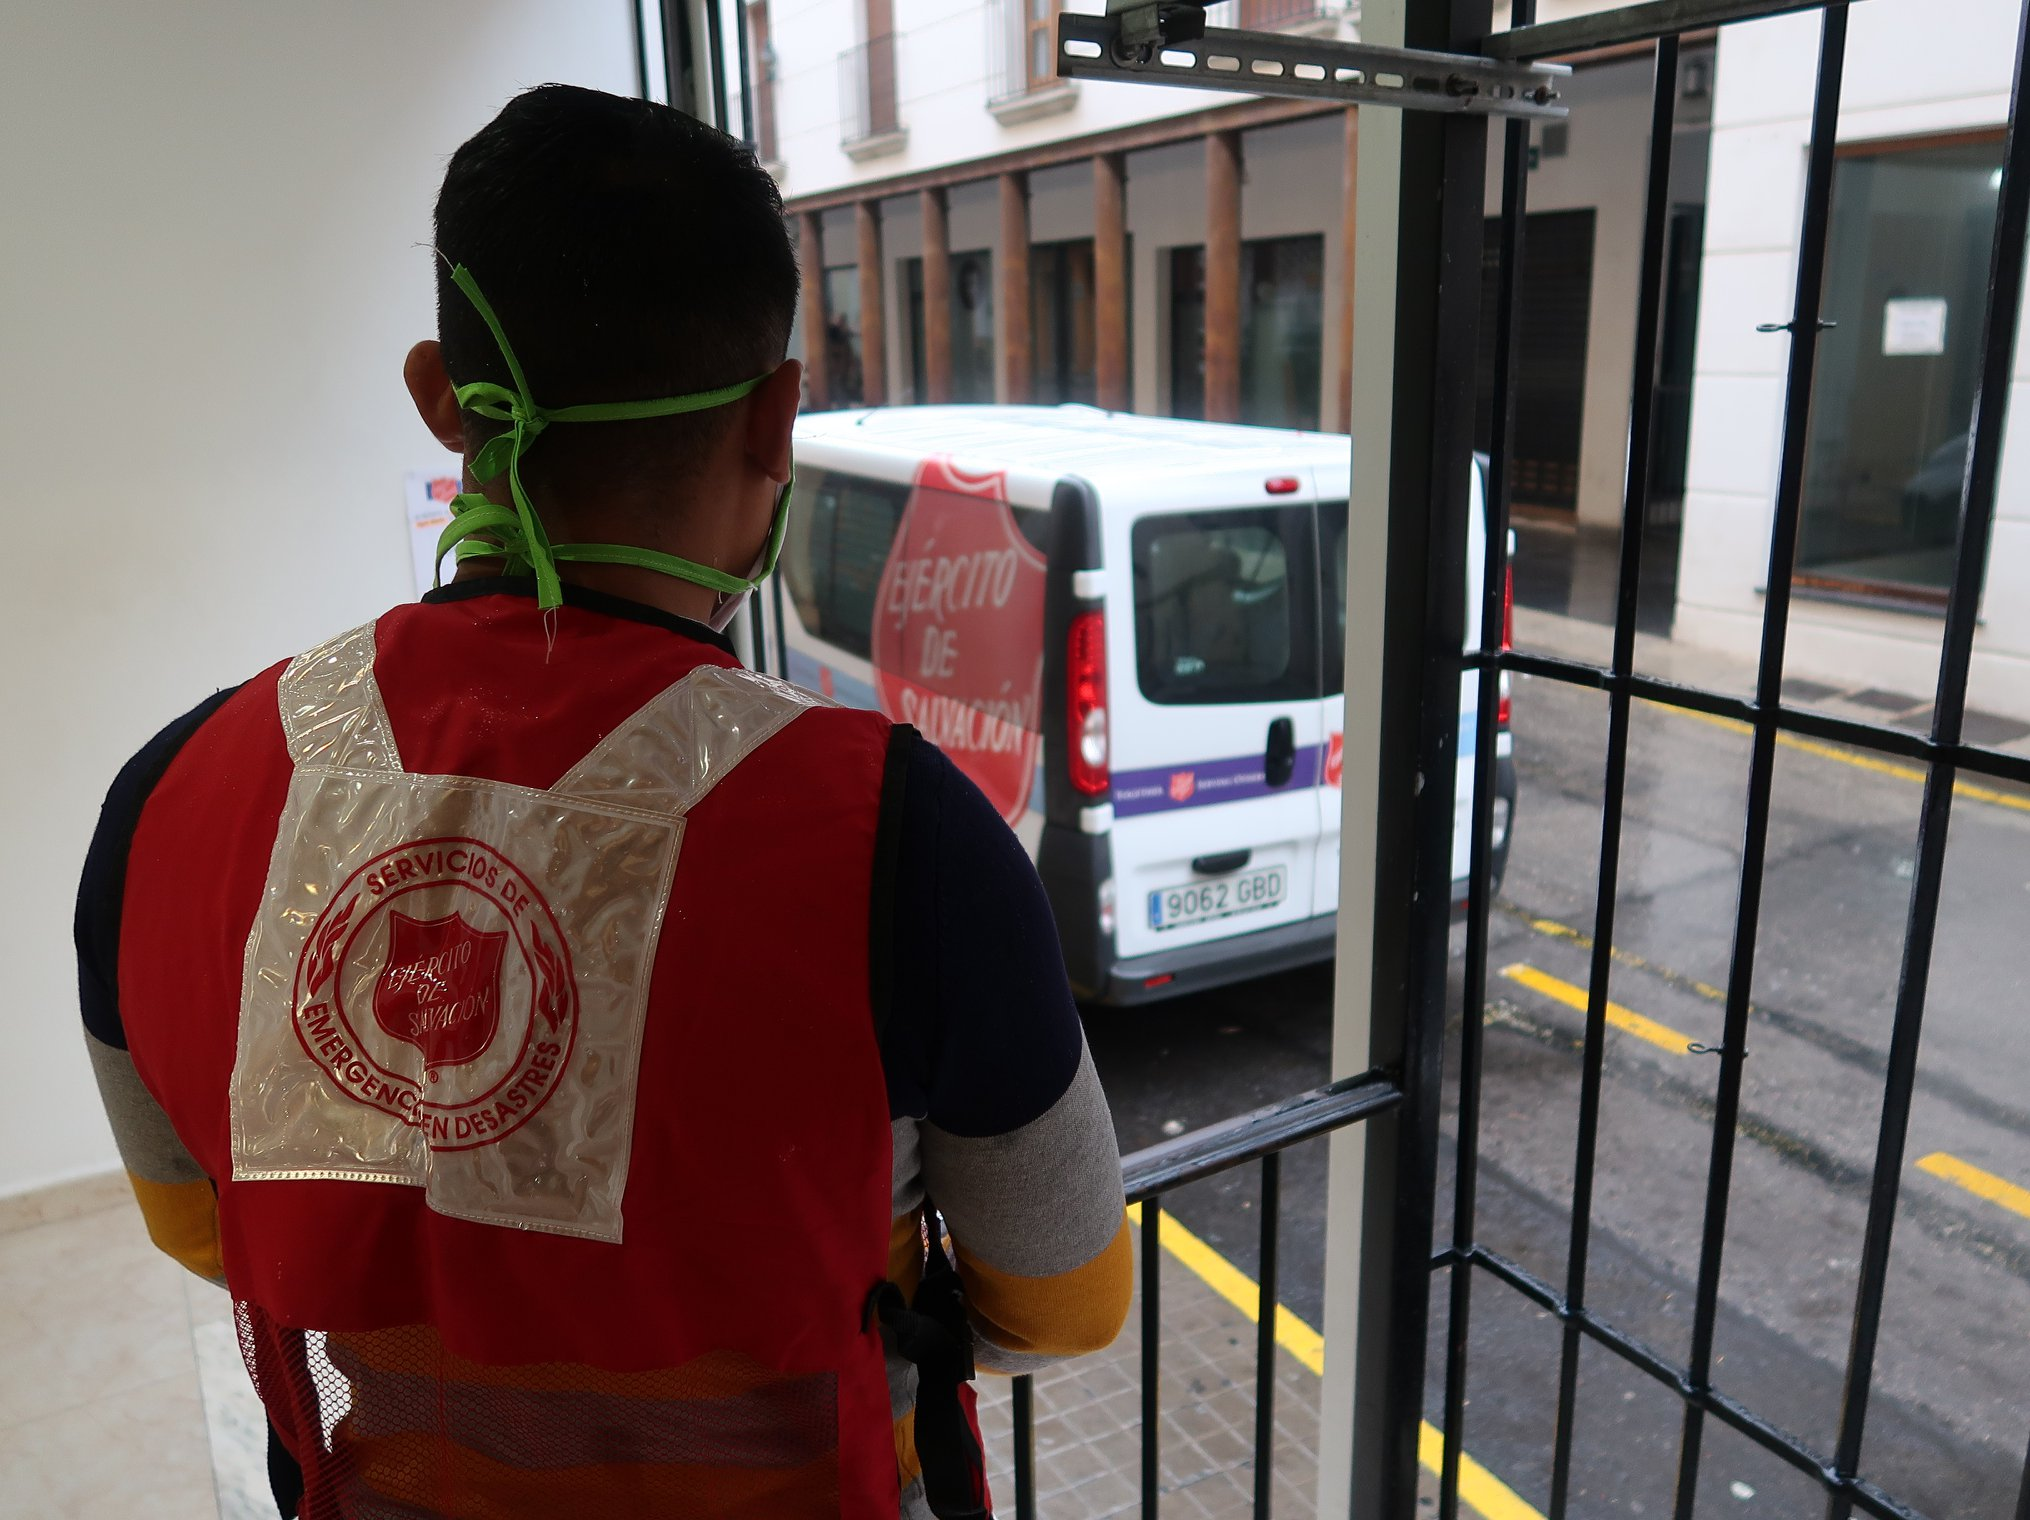 Salvation Army COVID-19 response in Dénia, Spain